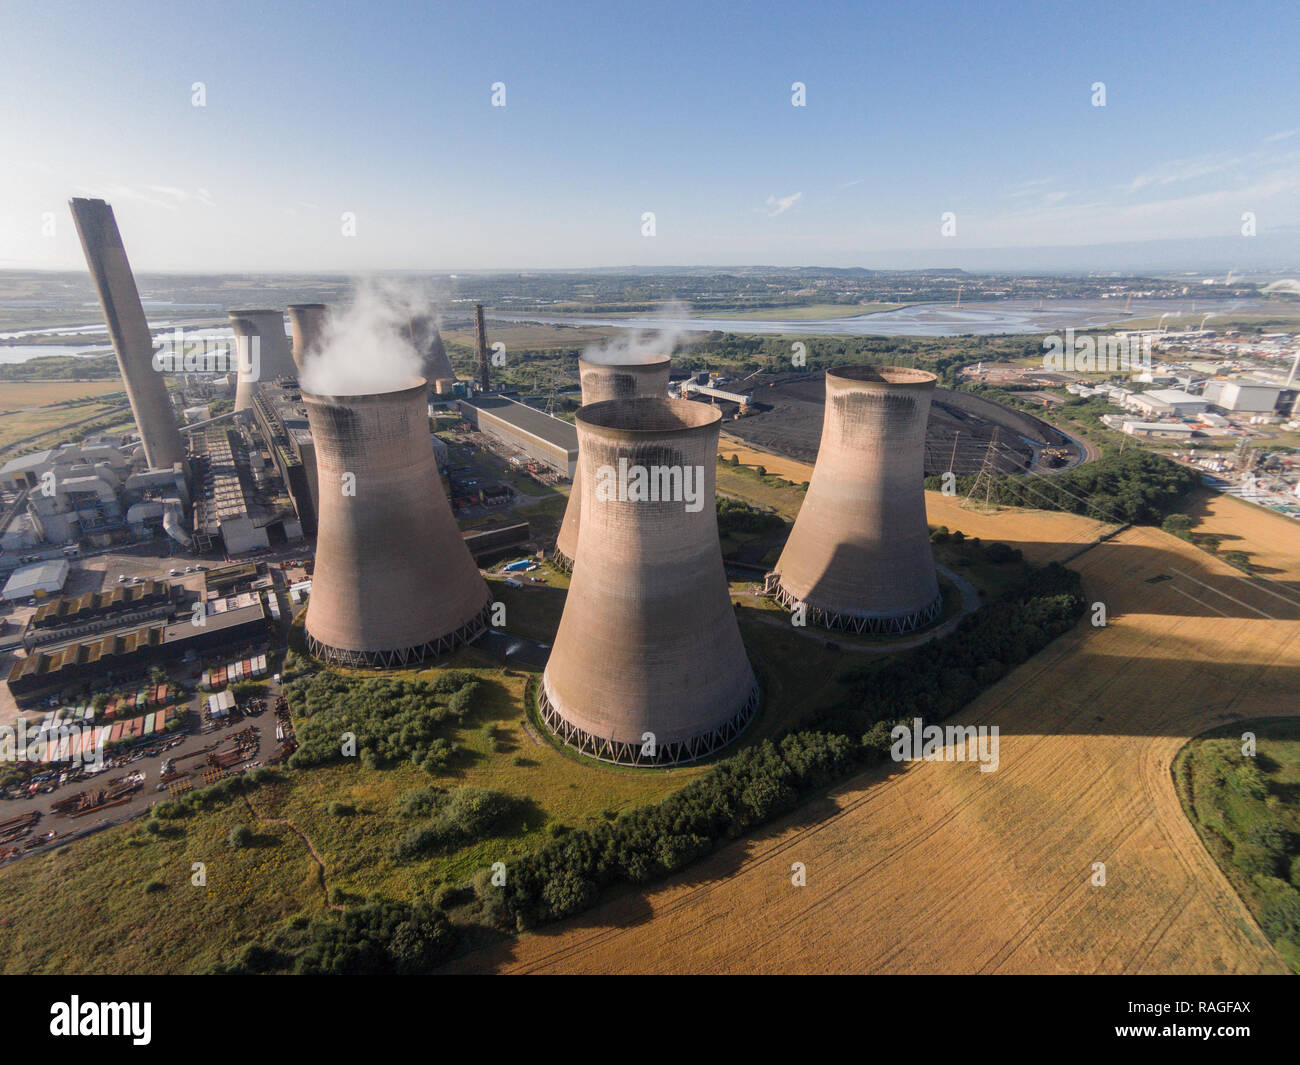 Aerial photographs of Fiddlers Ferry Power Station in Widnes / Sankey.  A Coal Power Station which famously lost a tower in 1984 due to high wind. - Stock Image